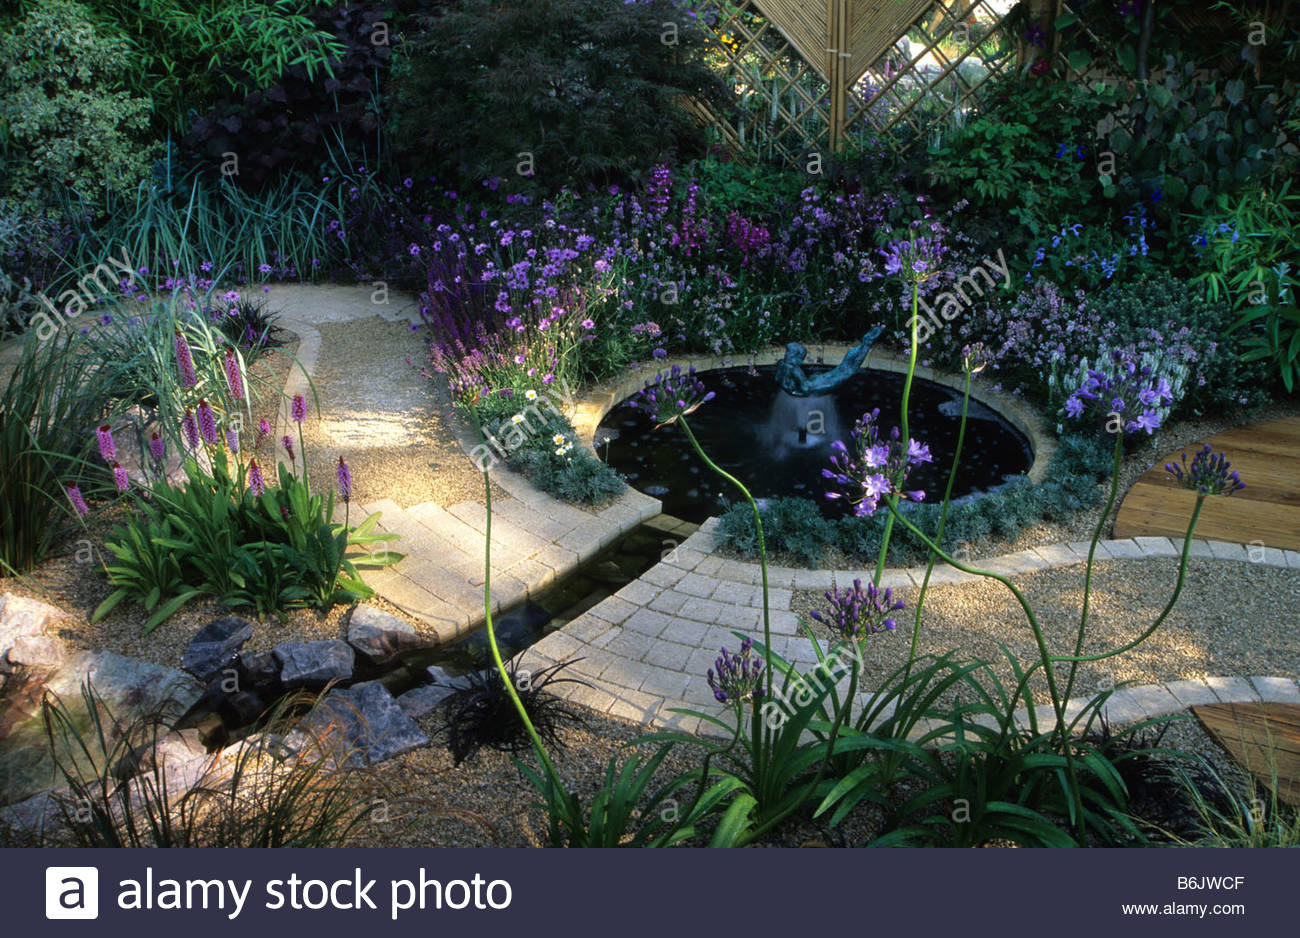 Feng shui garden design pamela woods formal circular pool for Feng shui garden designs